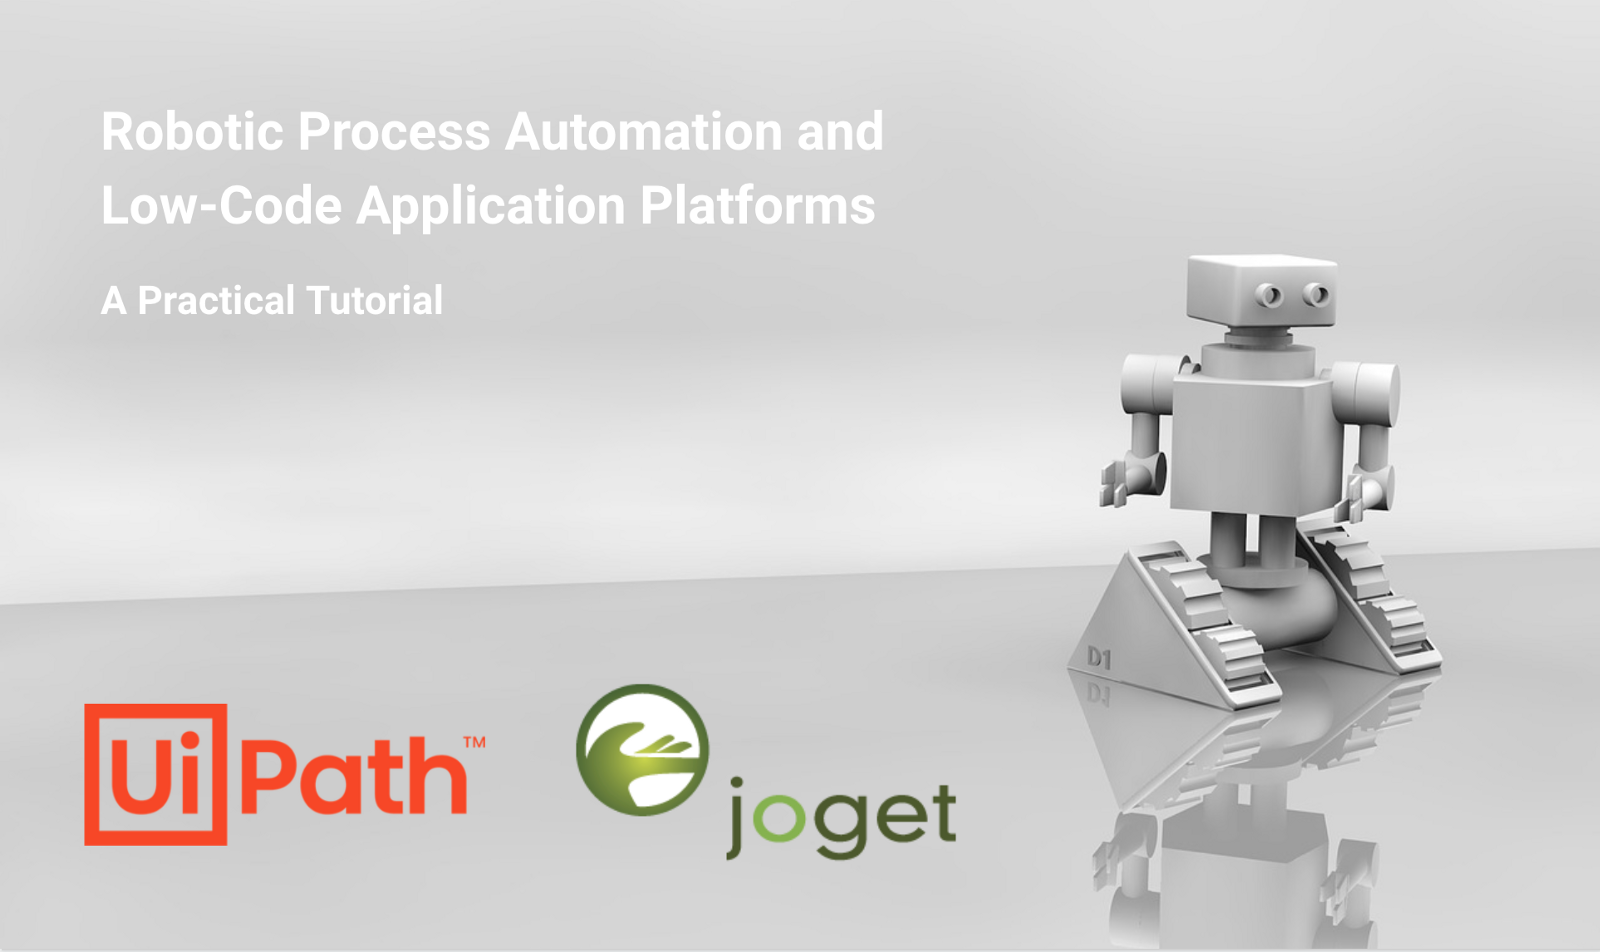 Robotic Process Automation and Low-Code: A Quick